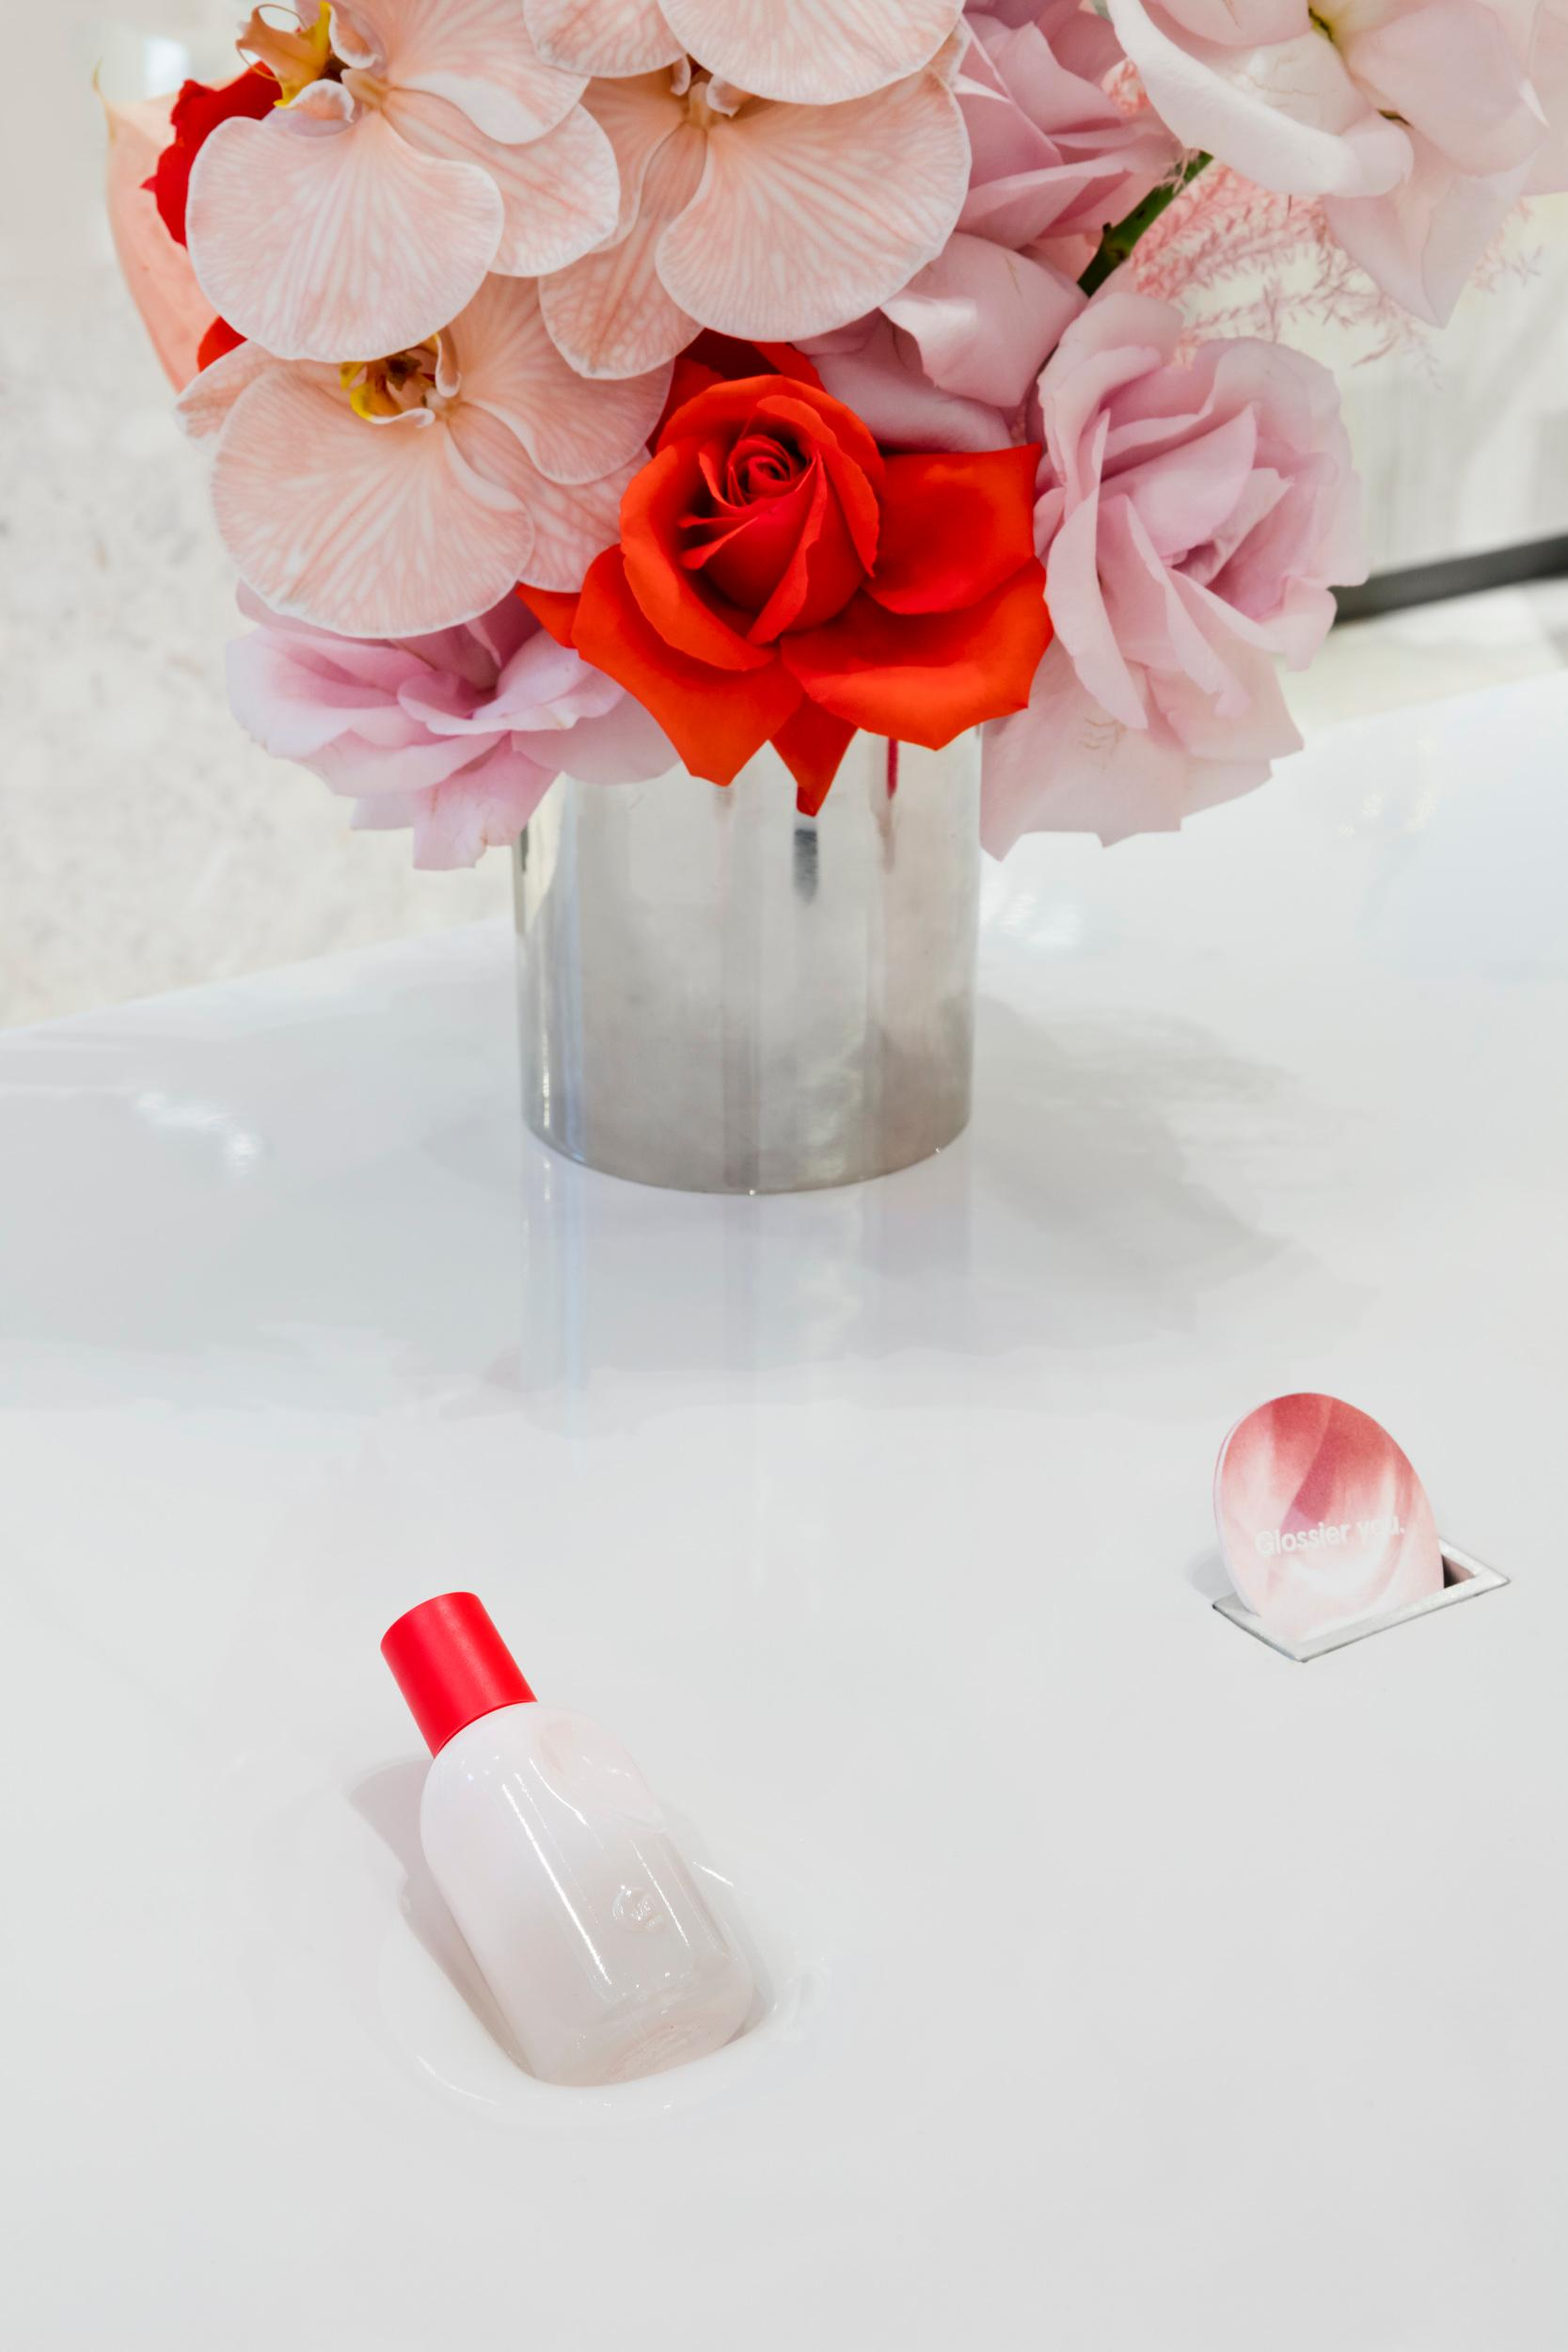 <p>Glossier You fragrance is all the rage this holiday season, $60, courtesy of Nordstrom.  Grab a bottle at the Nordstrom pop-up now  through February 16, 2020. (Image: Nordstrom)</p><p></p>